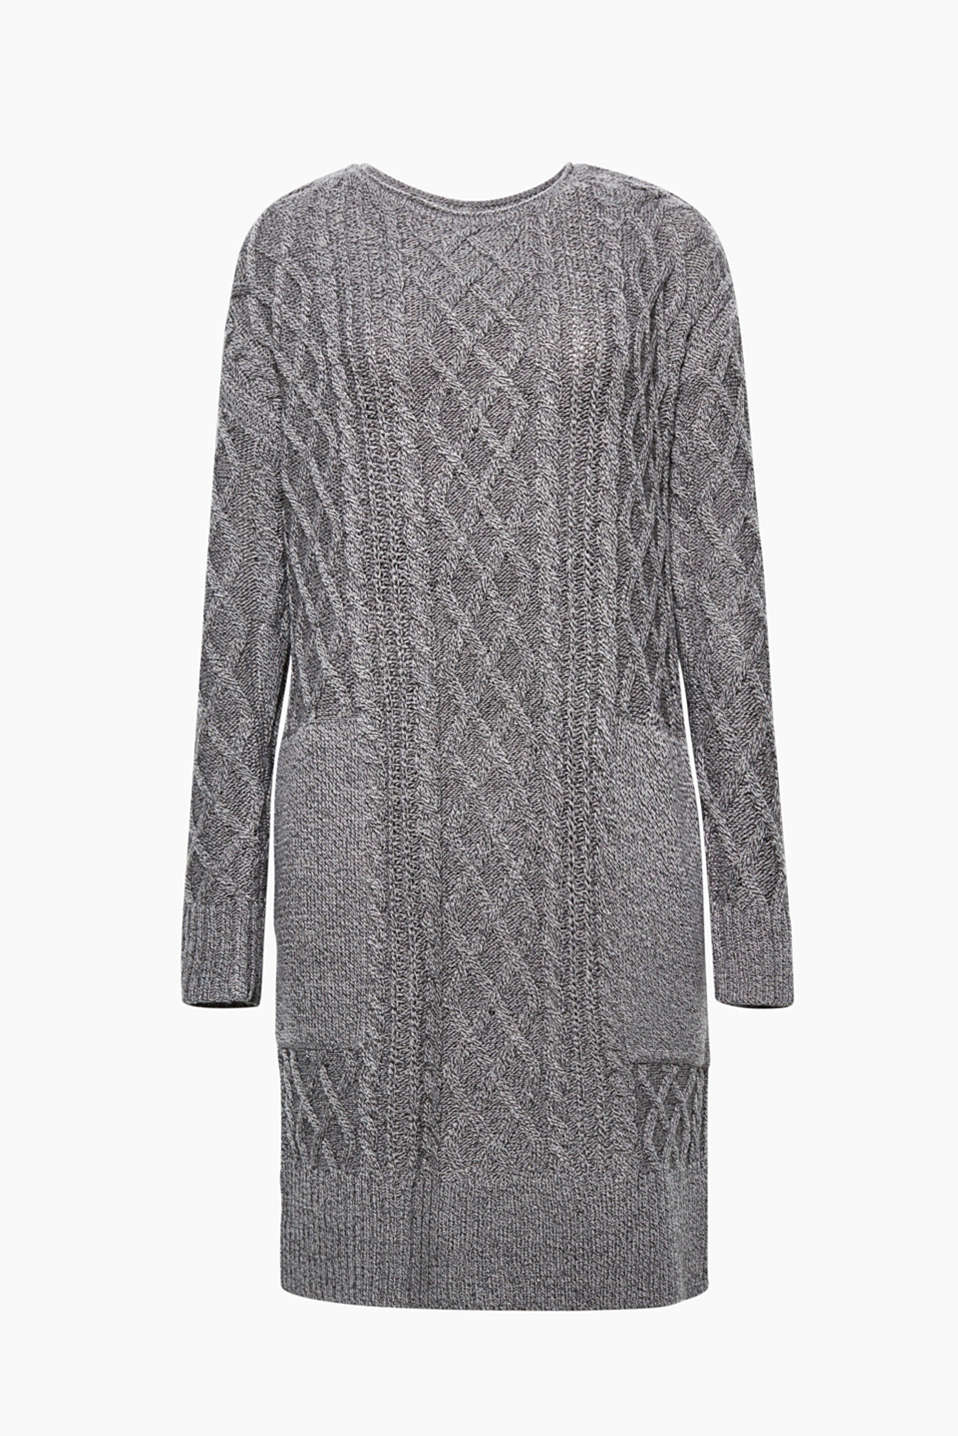 This straight cut dress embodies casual, cosy style with its cable knit pattern and comfortable slit pockets.